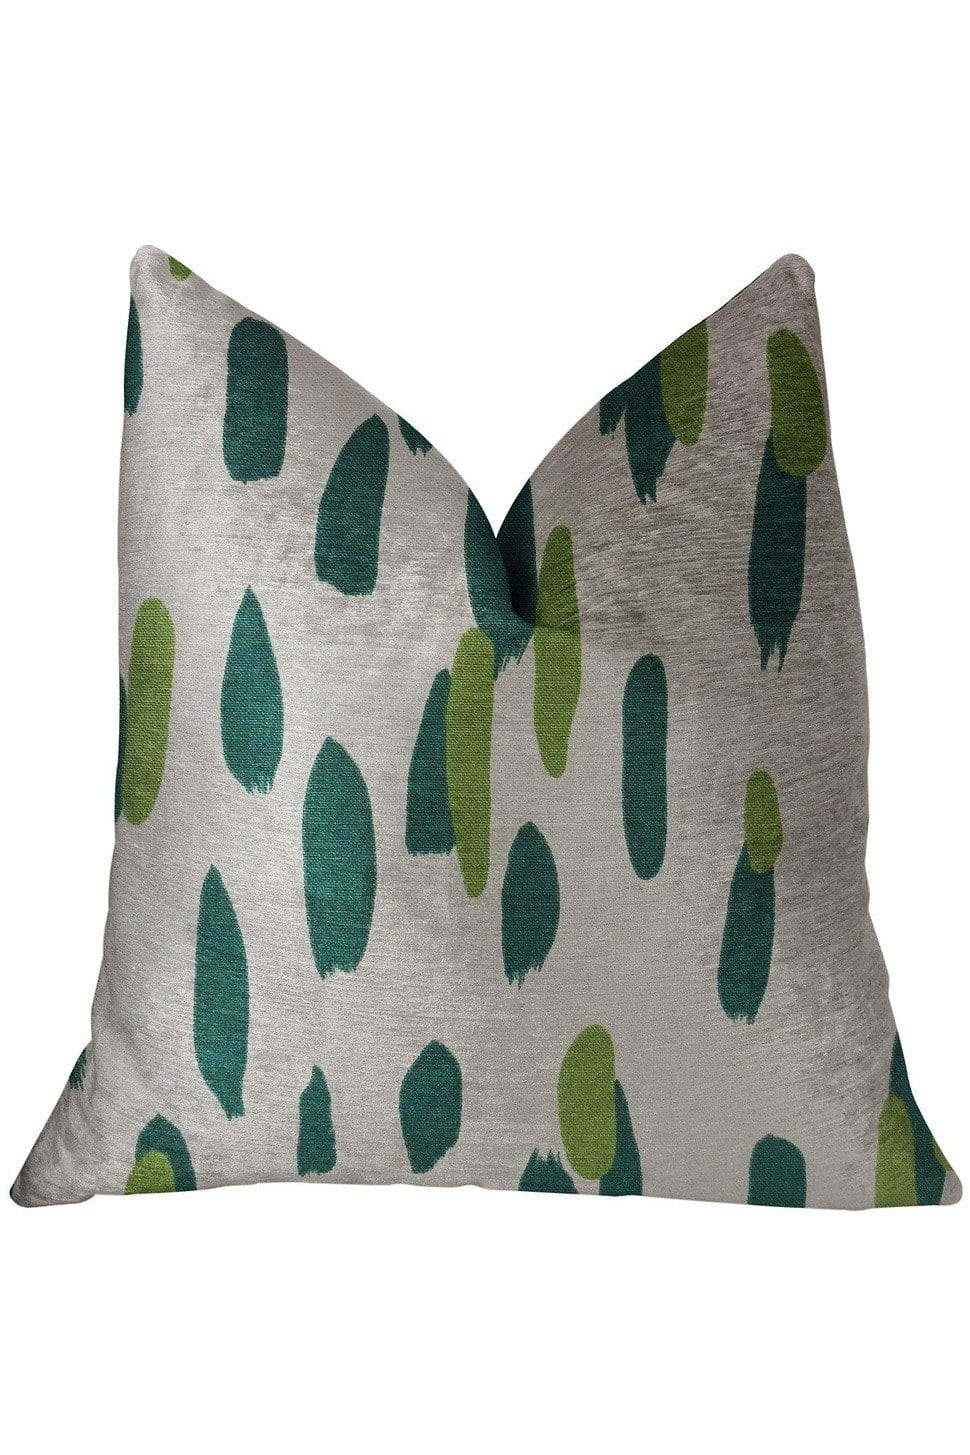 Bosky Willow Green and Beige Luxury Throw Pillow - Himelhoch's